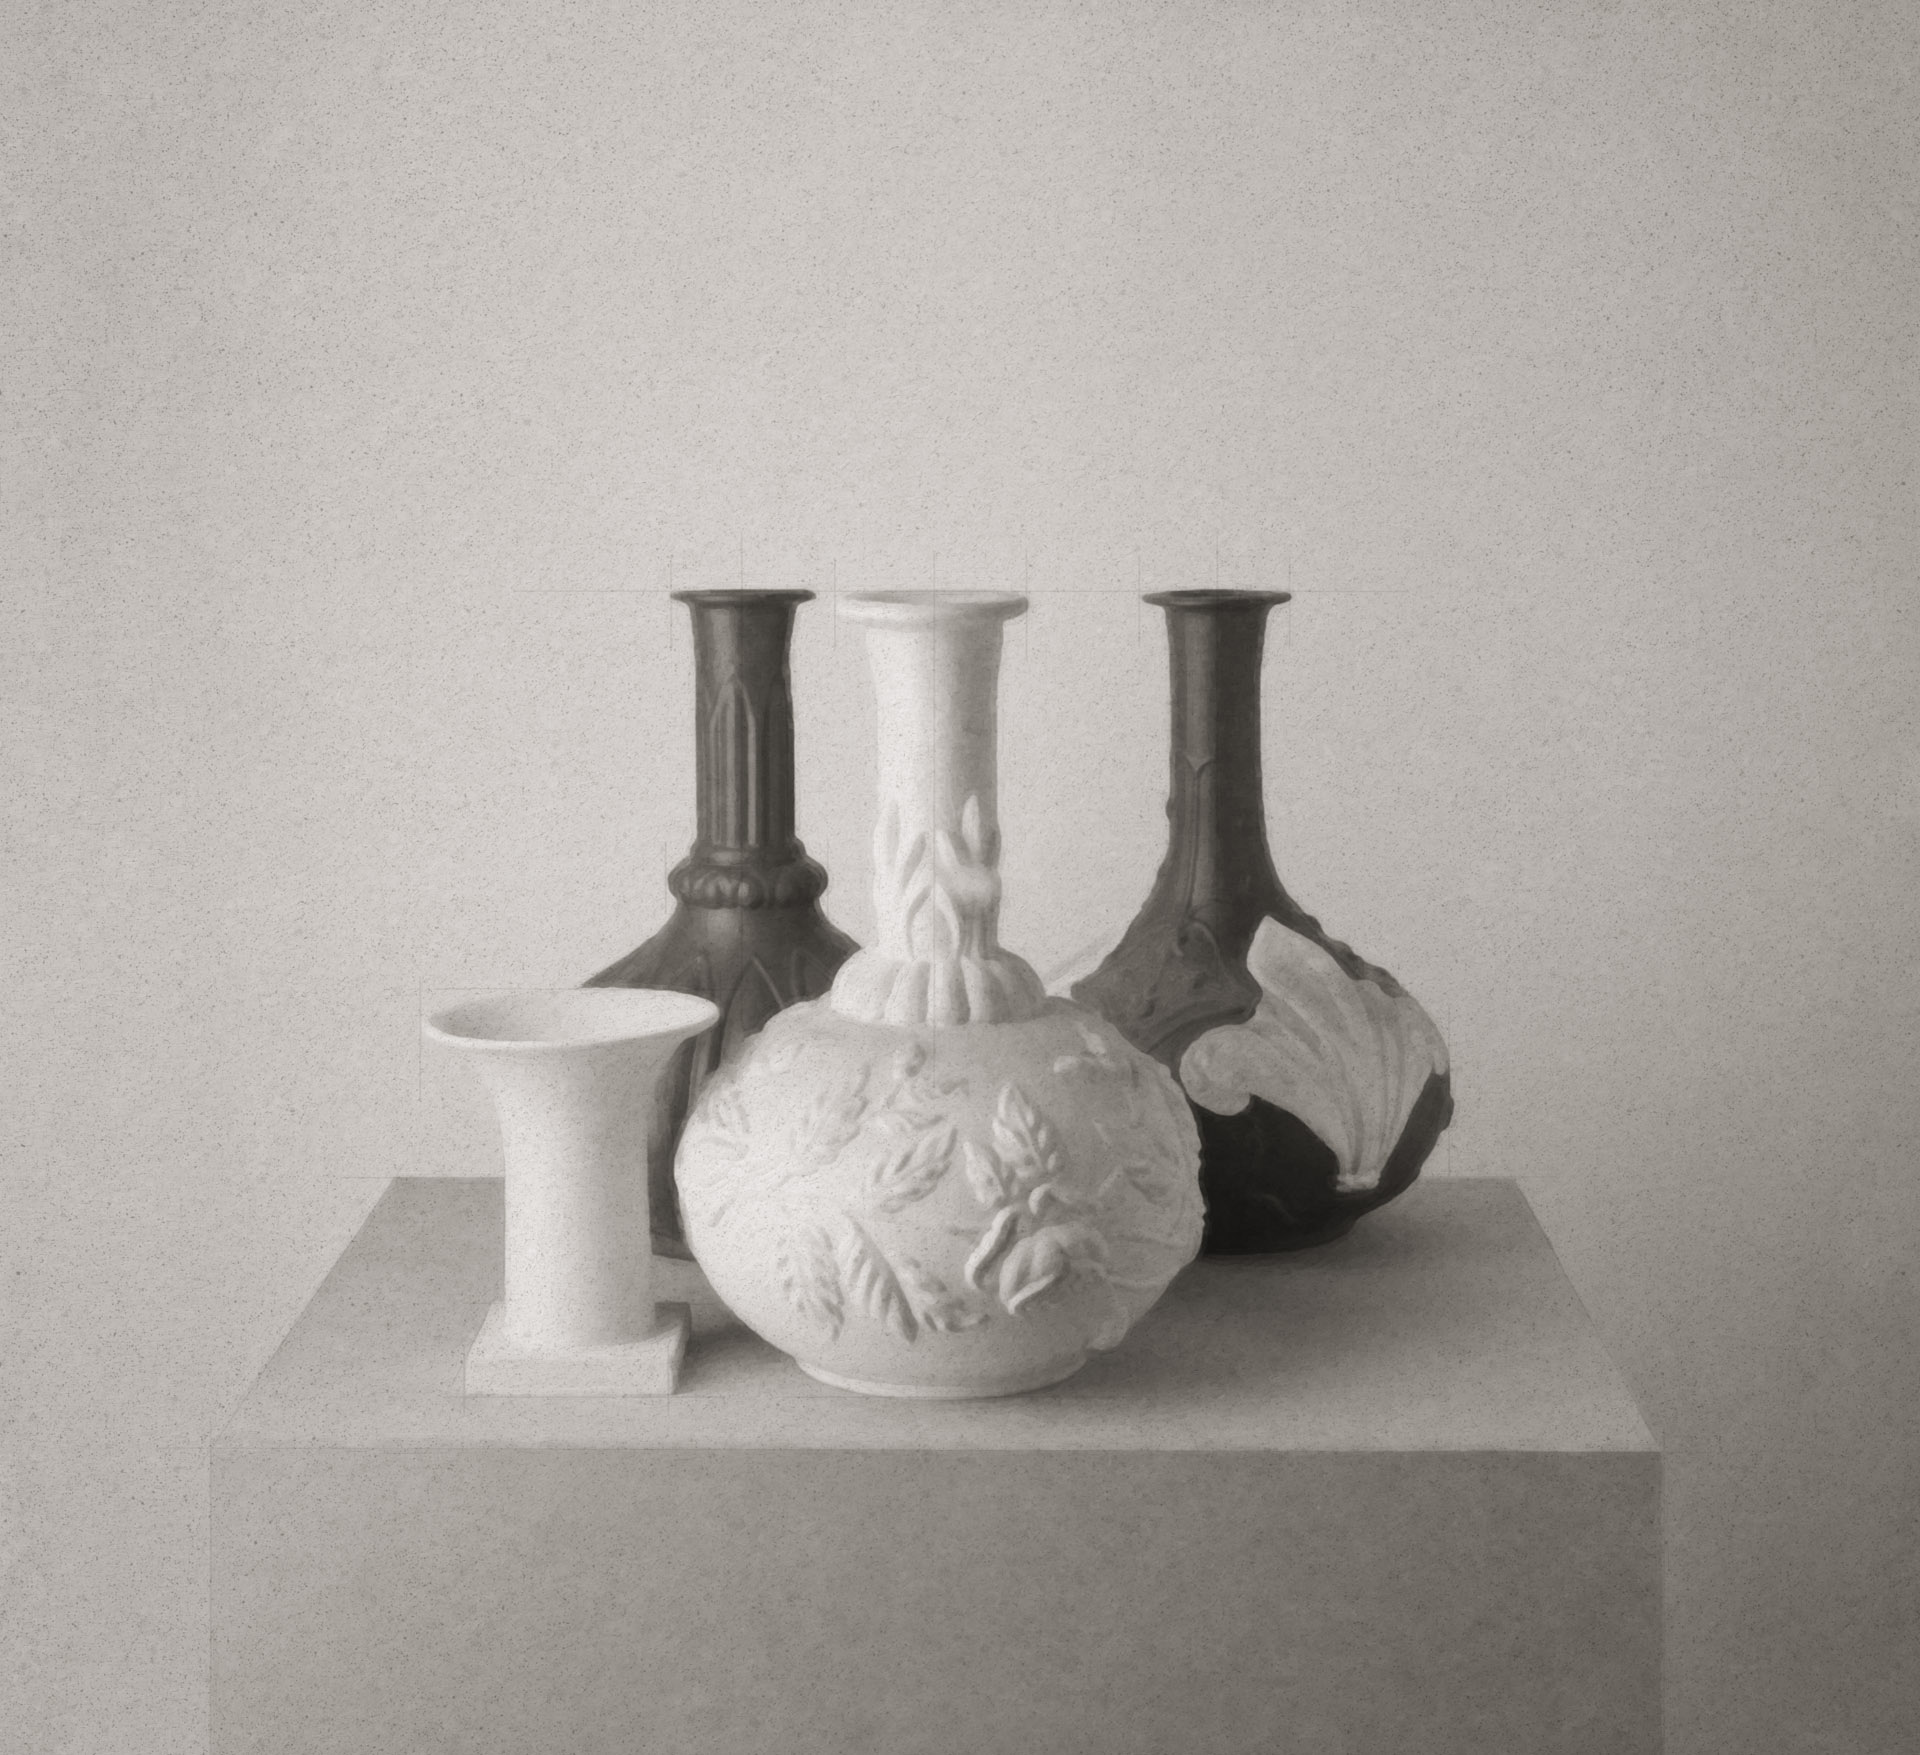 Morandi on a Pedestal 185